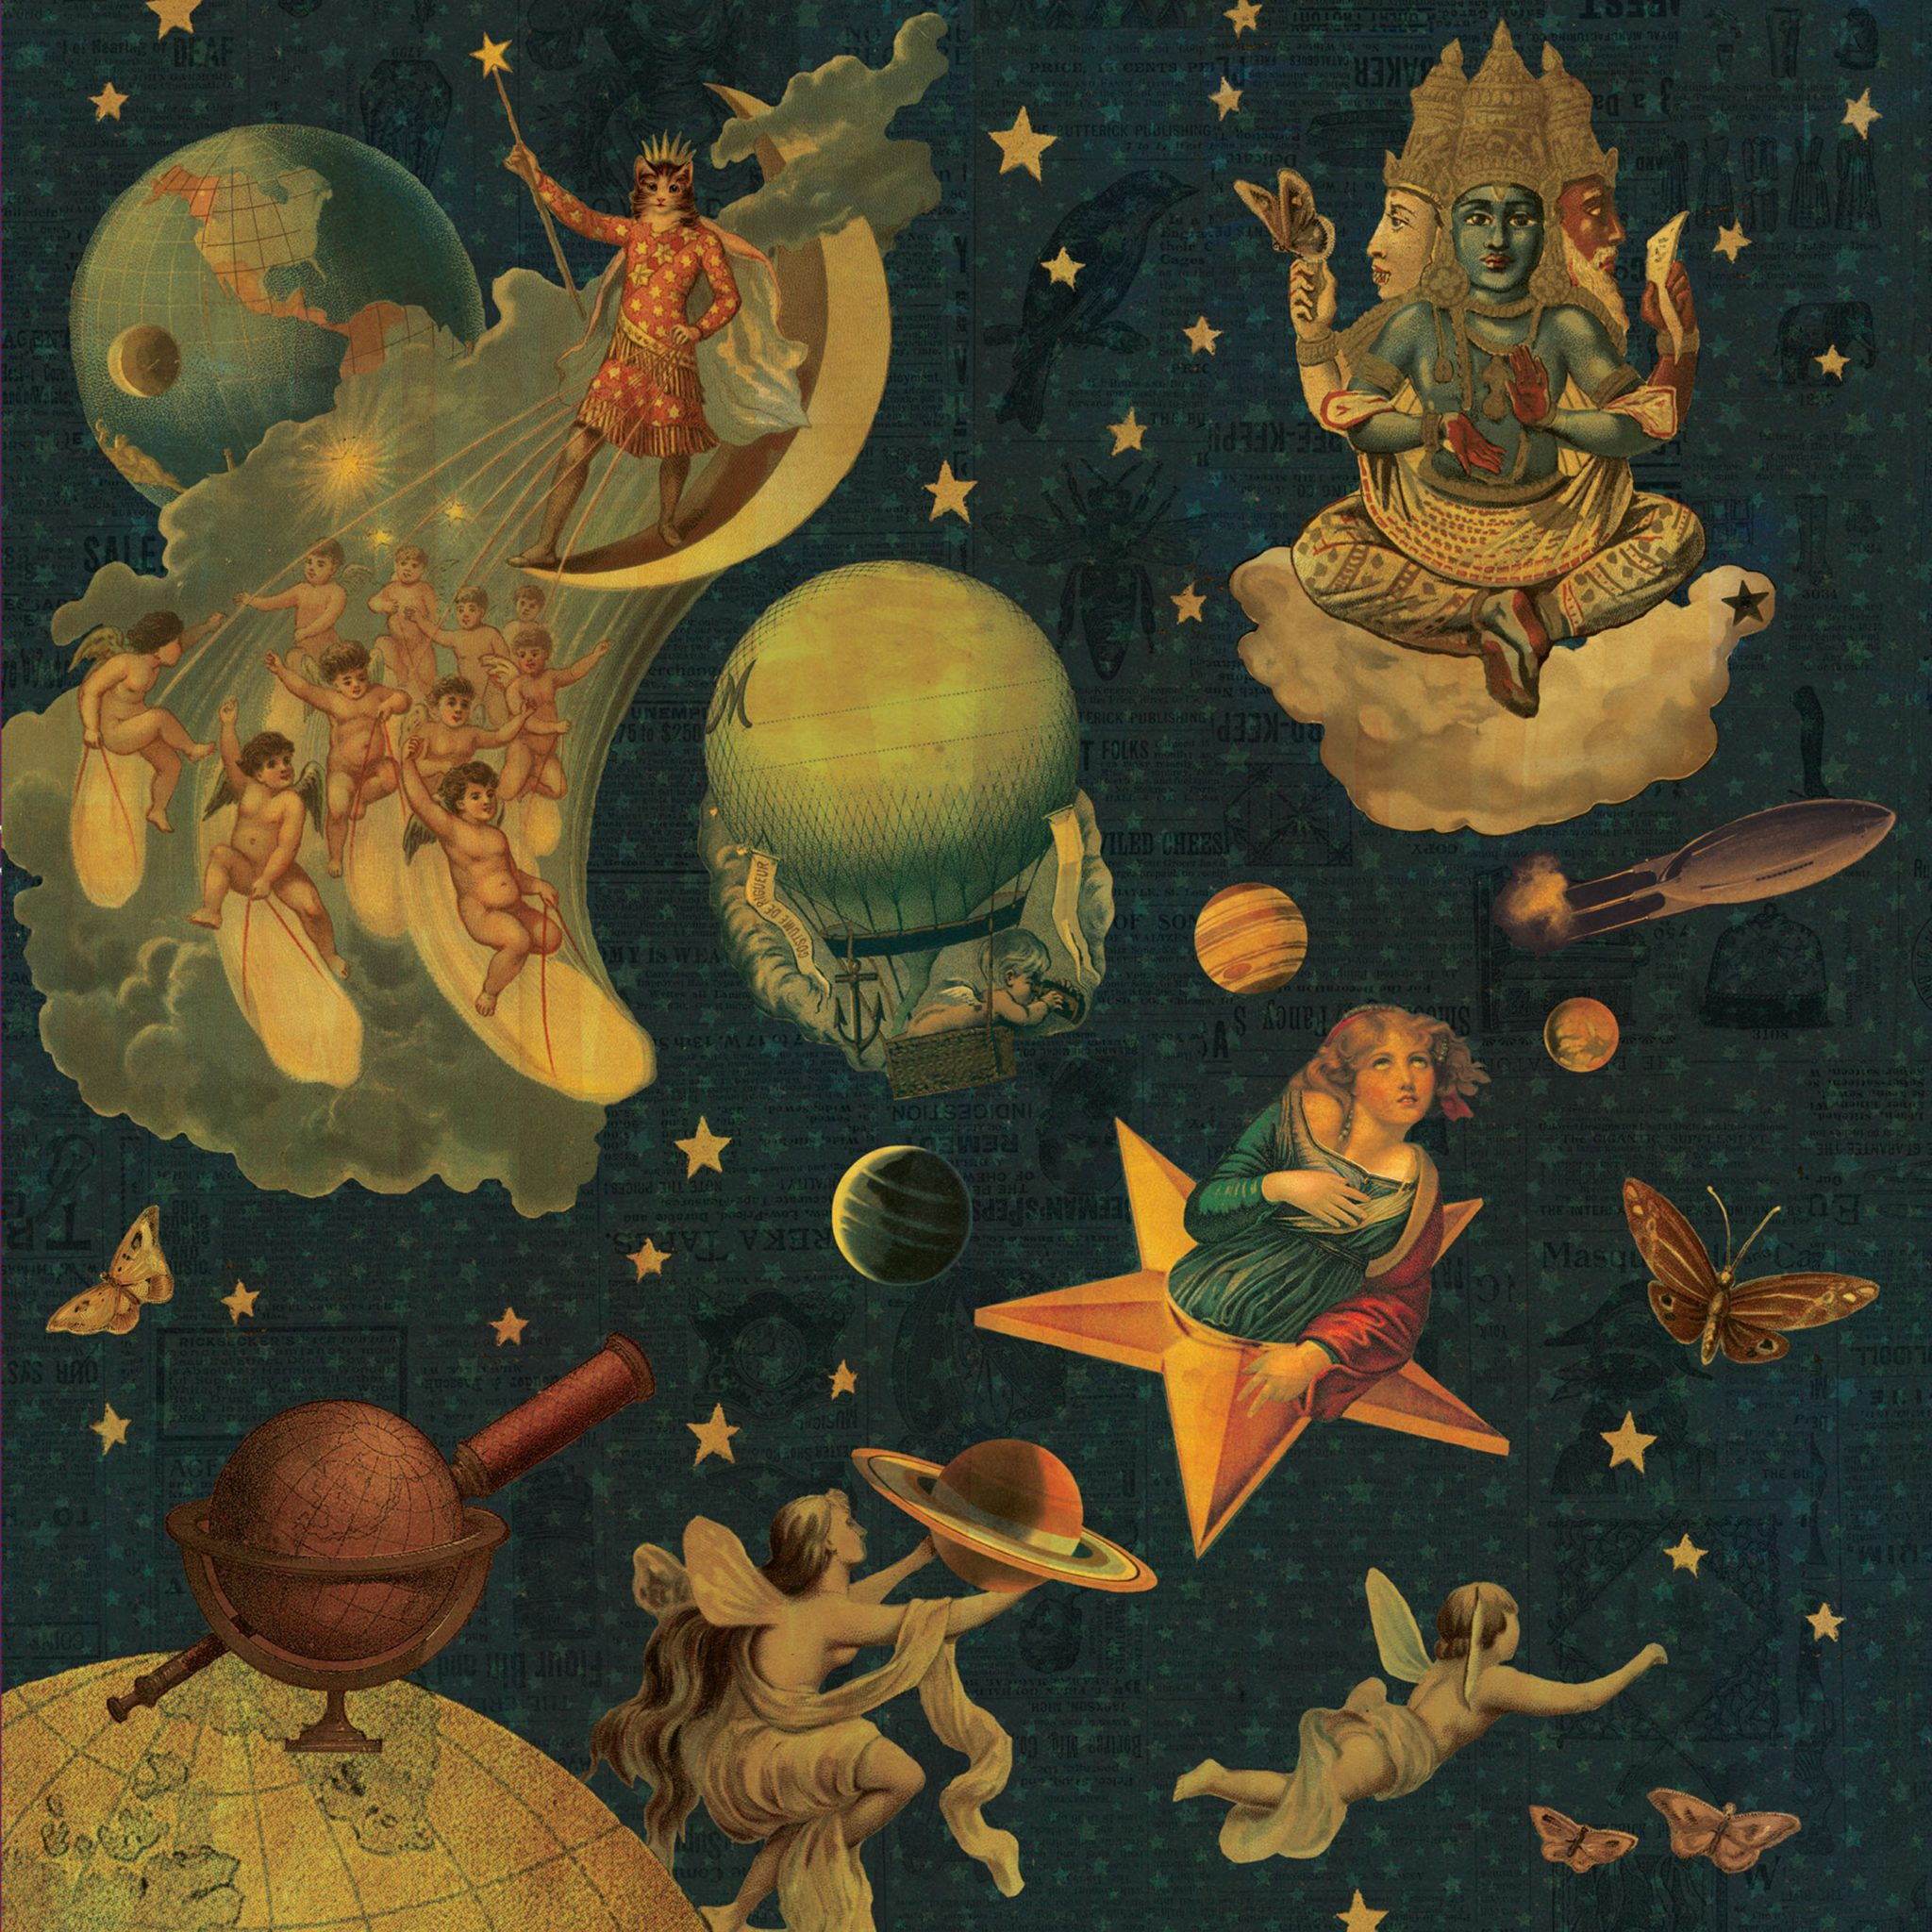 News Added Oct 04, 2012 The newly Diamond Certified (10 Million sold) Smashing Pumpkins album Mellon Collie and the Infinite Sadness will be having a reissue AVAILABLE December 3rd & 4th. The details have been released this morning: DELUXE BOX SET: – 5CD +DVD – Physical Tracks: 106, Digital Tracks: 92 – Original album remastered […]